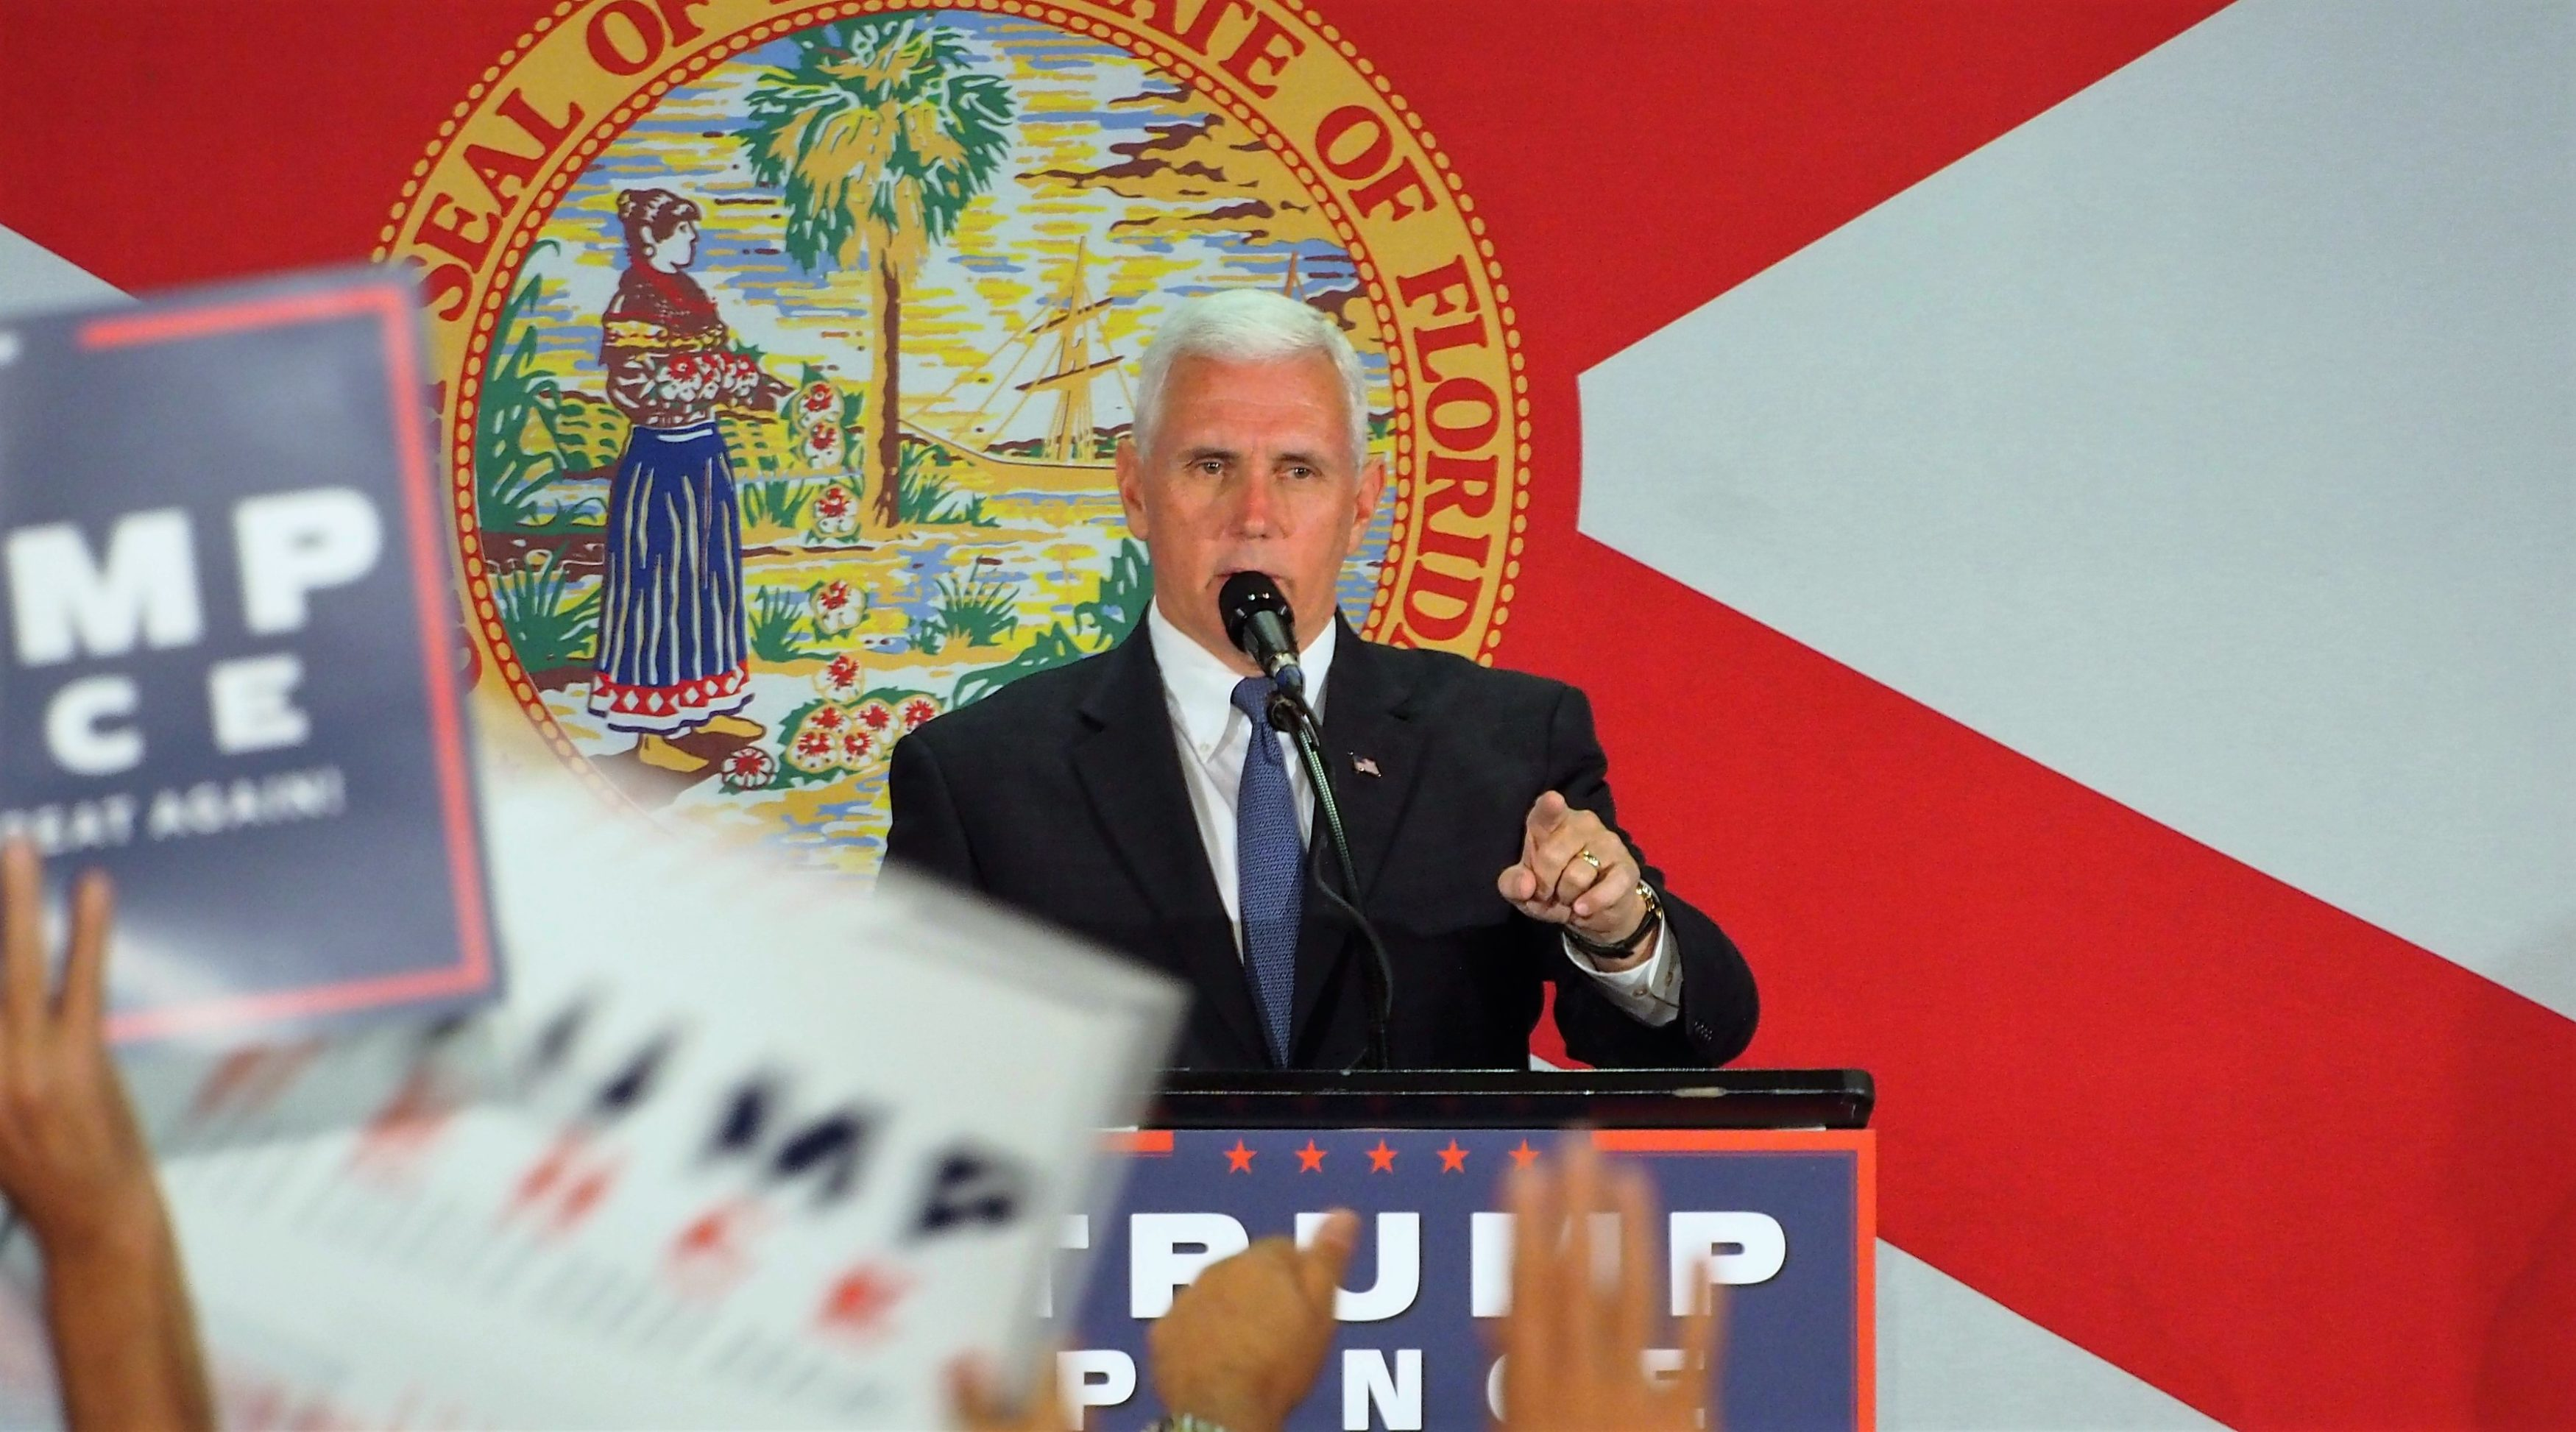 Mike-Pence-in-Cocoa-103116-3500x1946.jpg